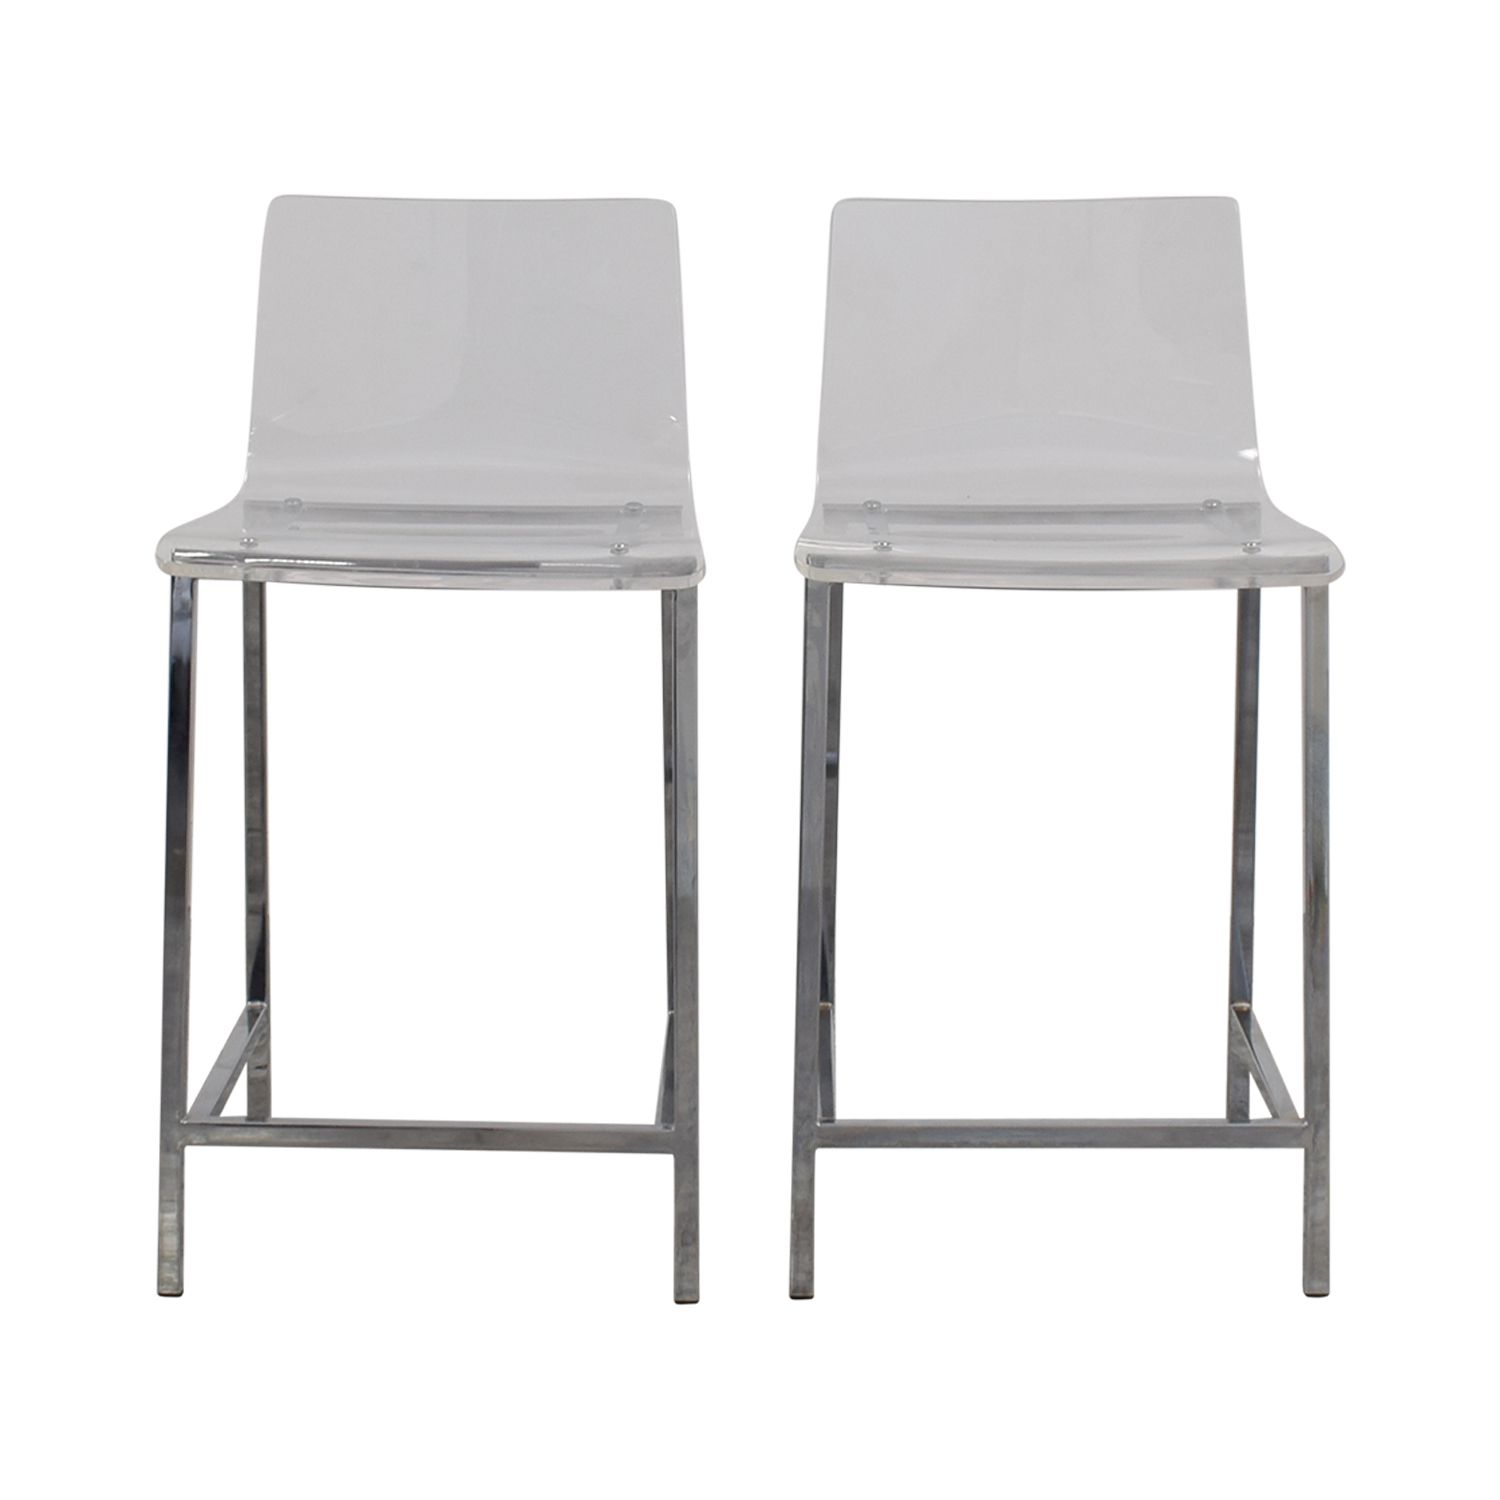 65 Off Cb2 Cb2 Clear Acrylic Bar Stools Chairs